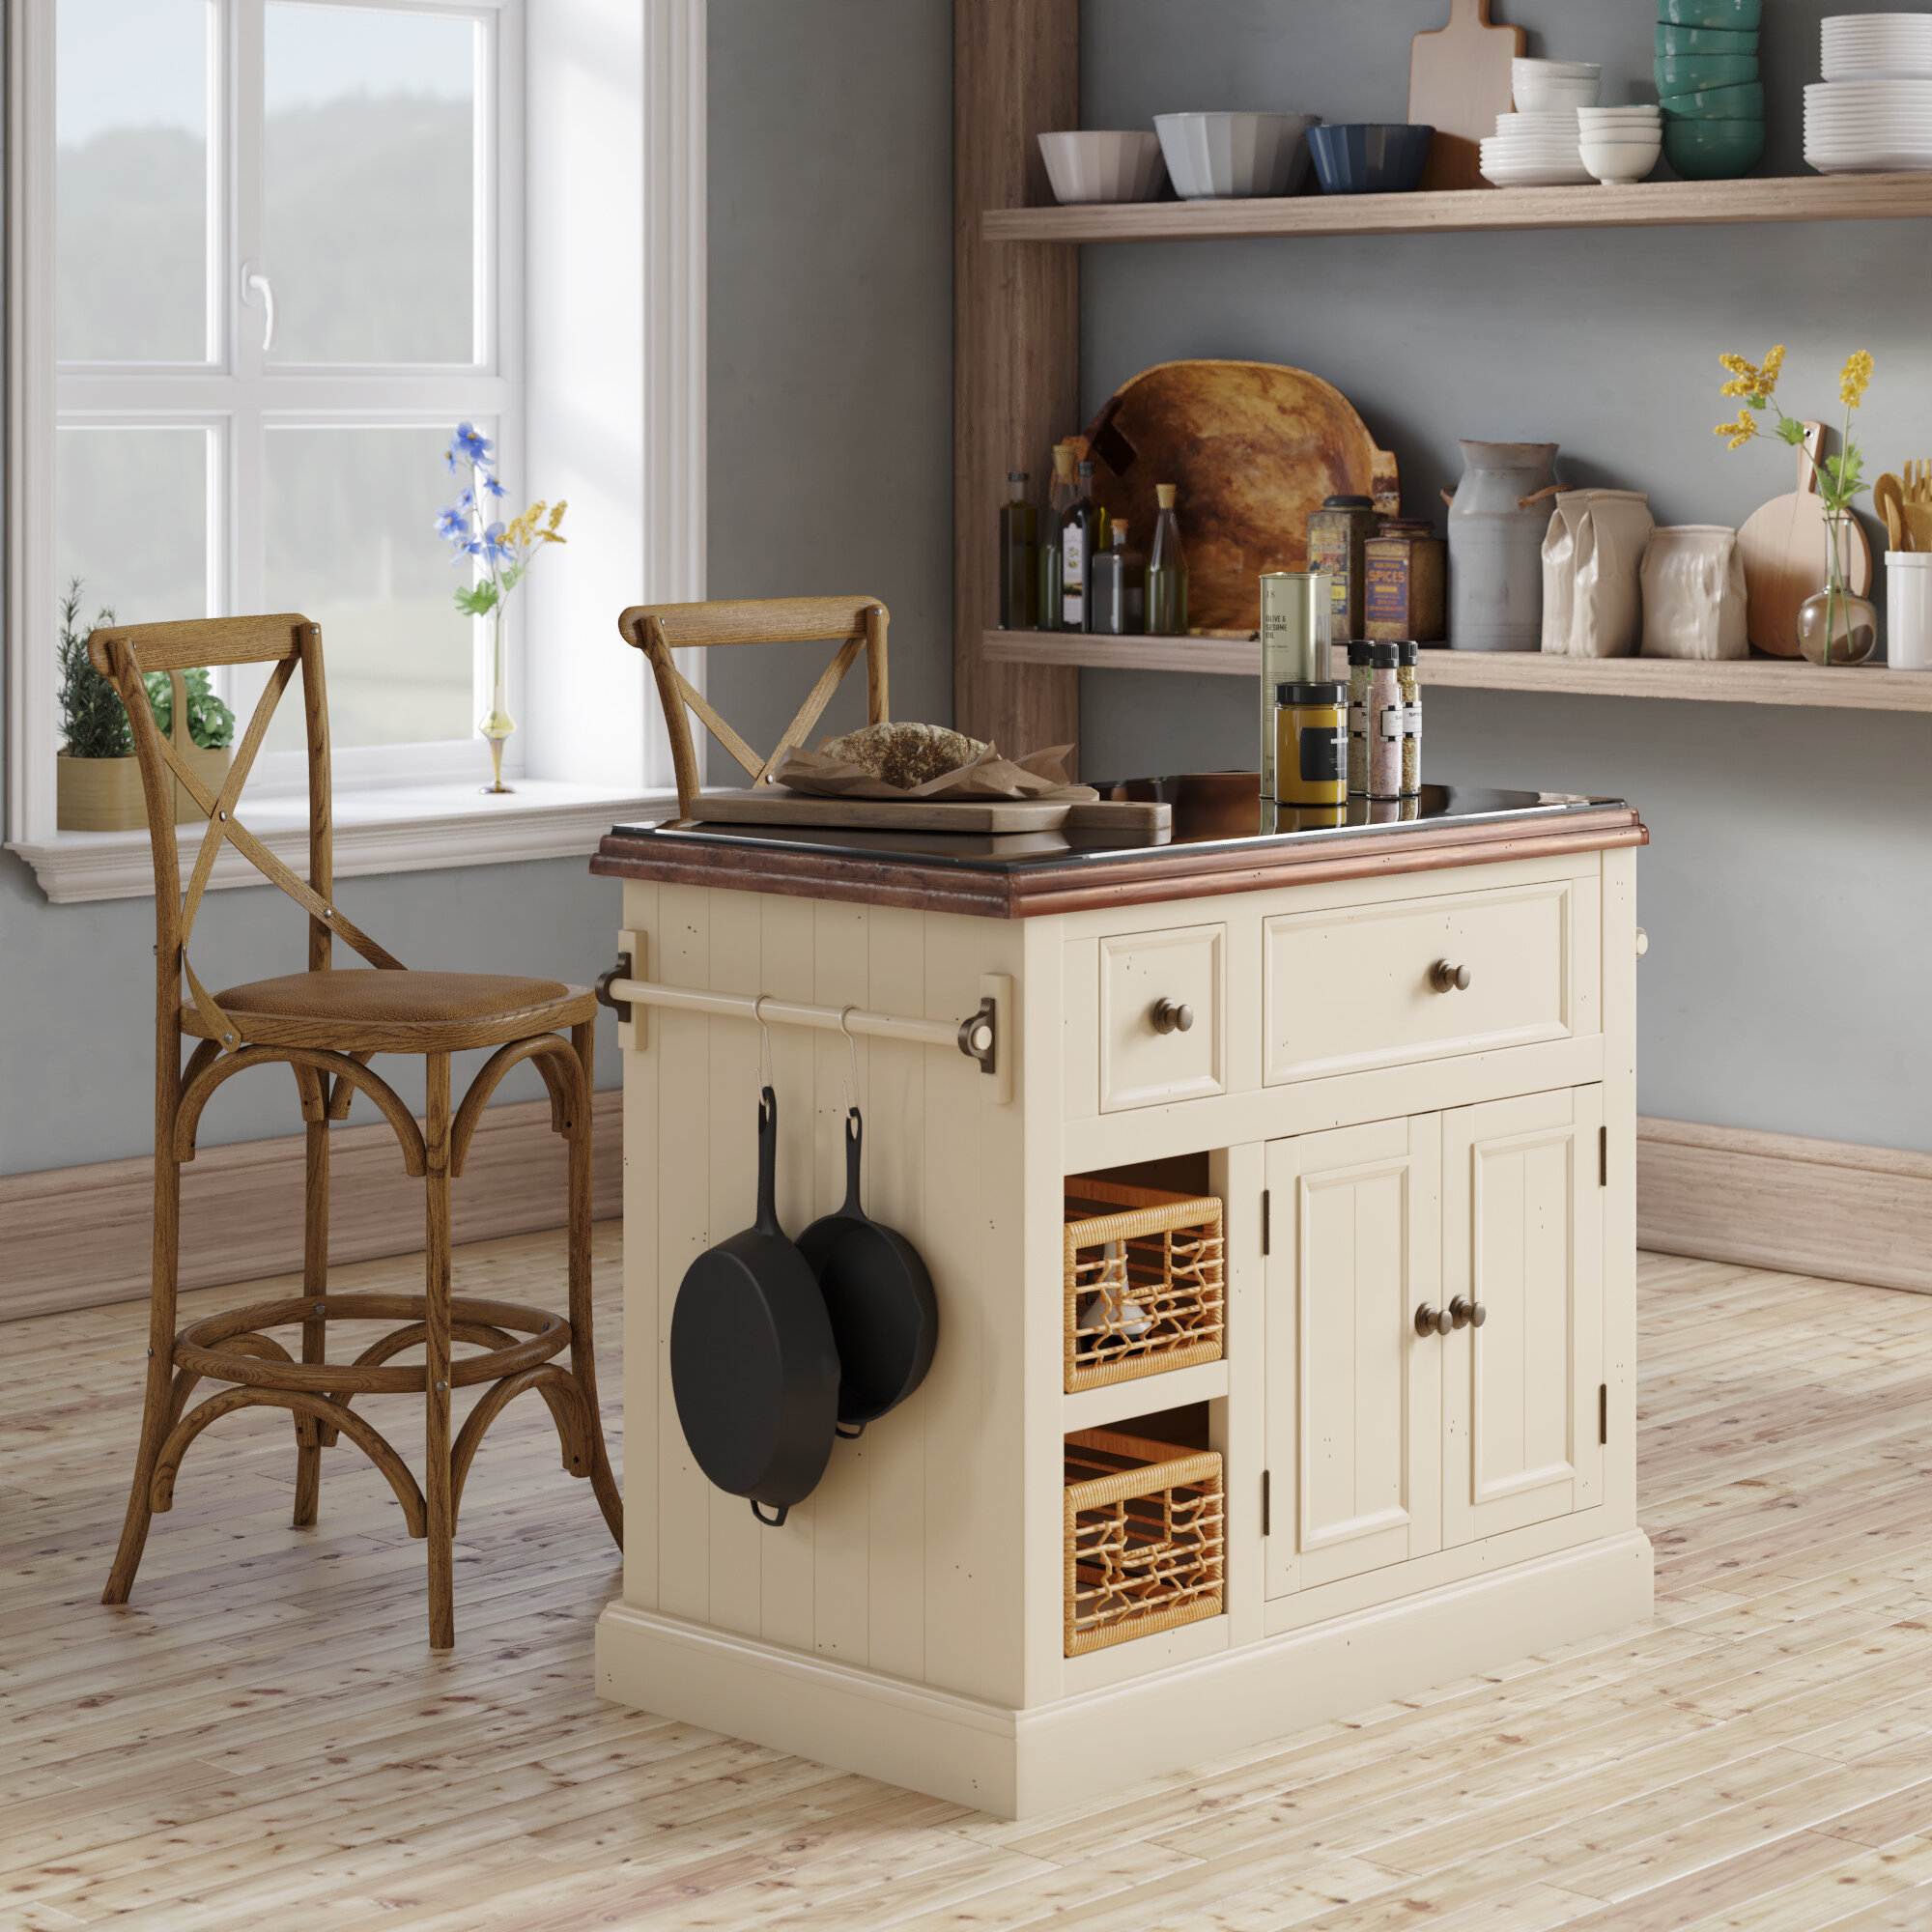 27a5802615a Laurel Foundry Modern Farmhouse Zula Kitchen Island with Granite Top    Reviews